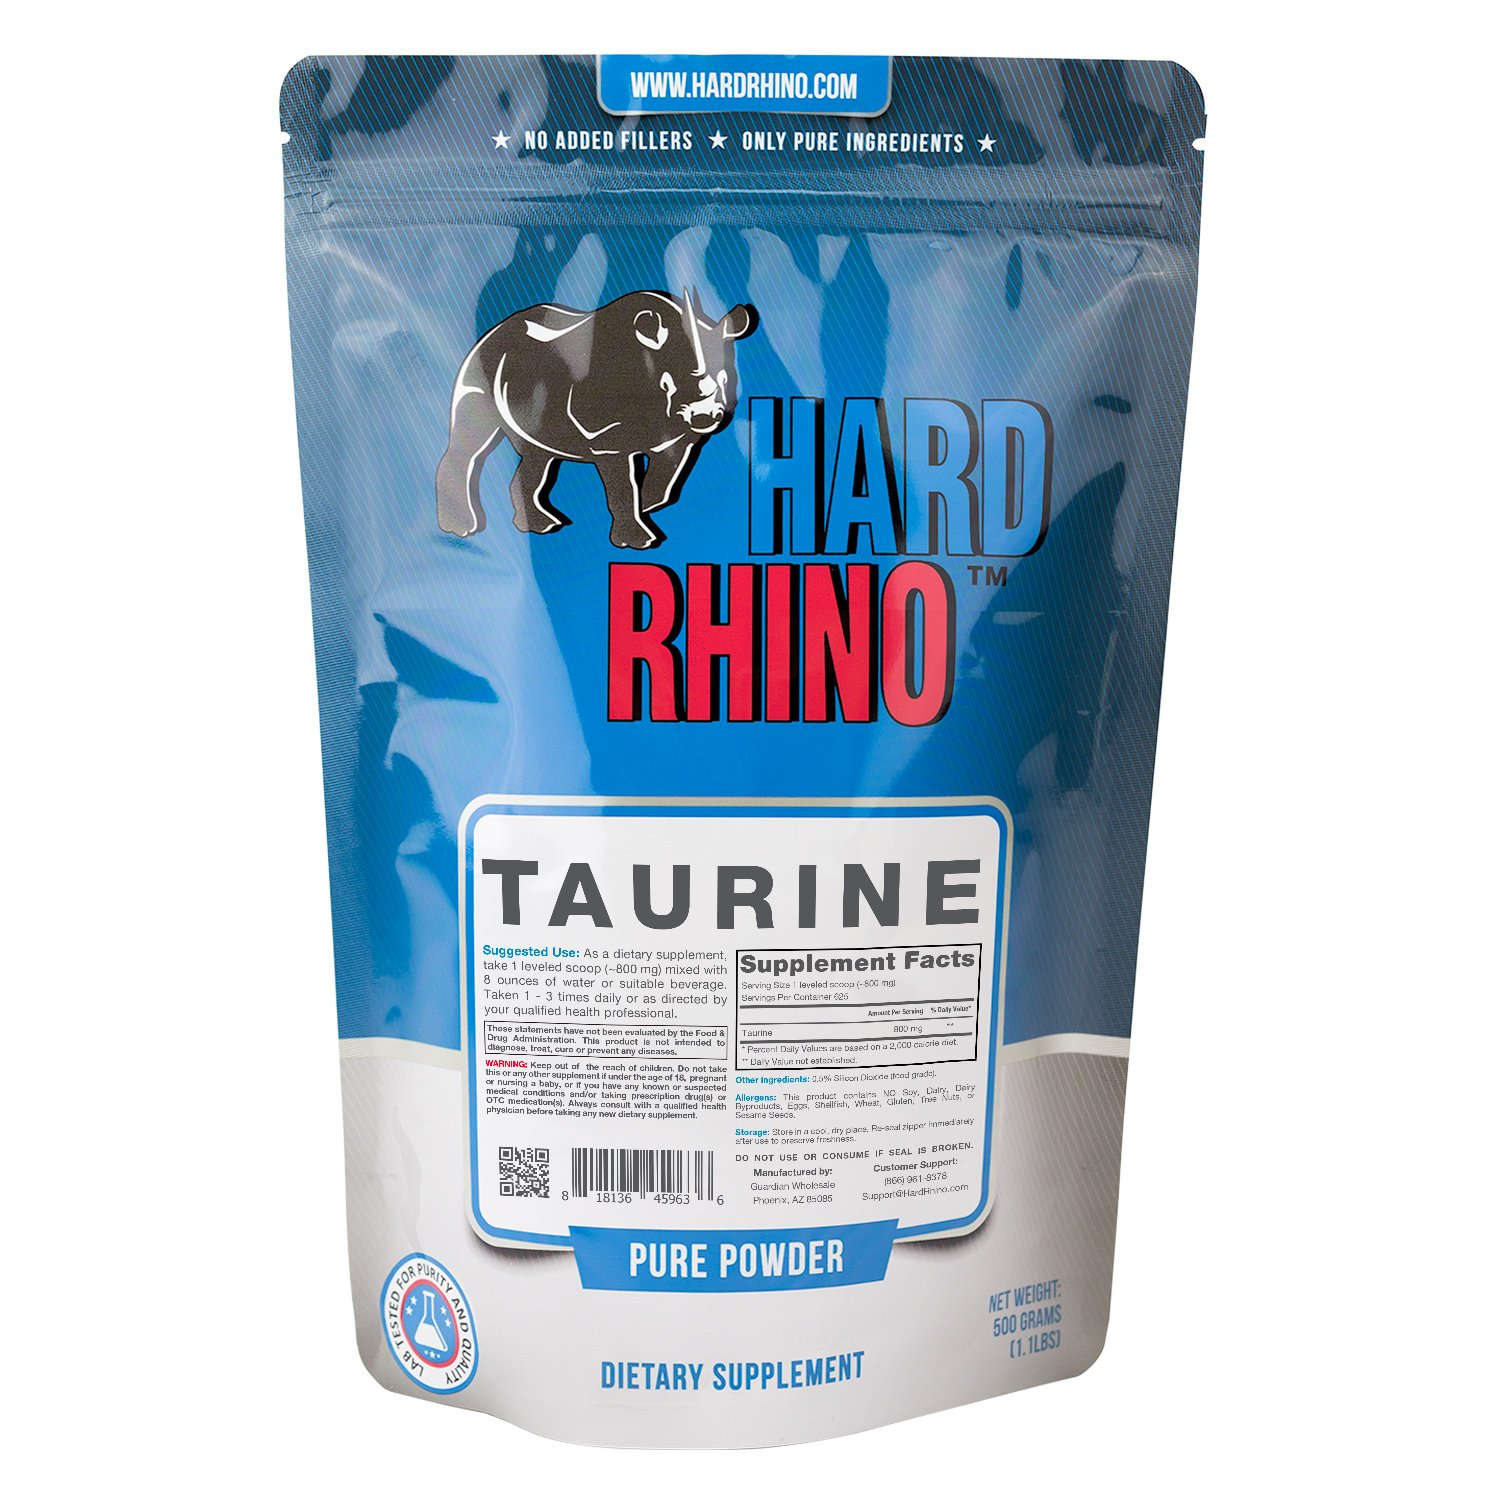 Hard Rhino Taurine Powder, 500 Grams (1.1 Lbs), Unflavored, Lab-Tested, Scoop Included